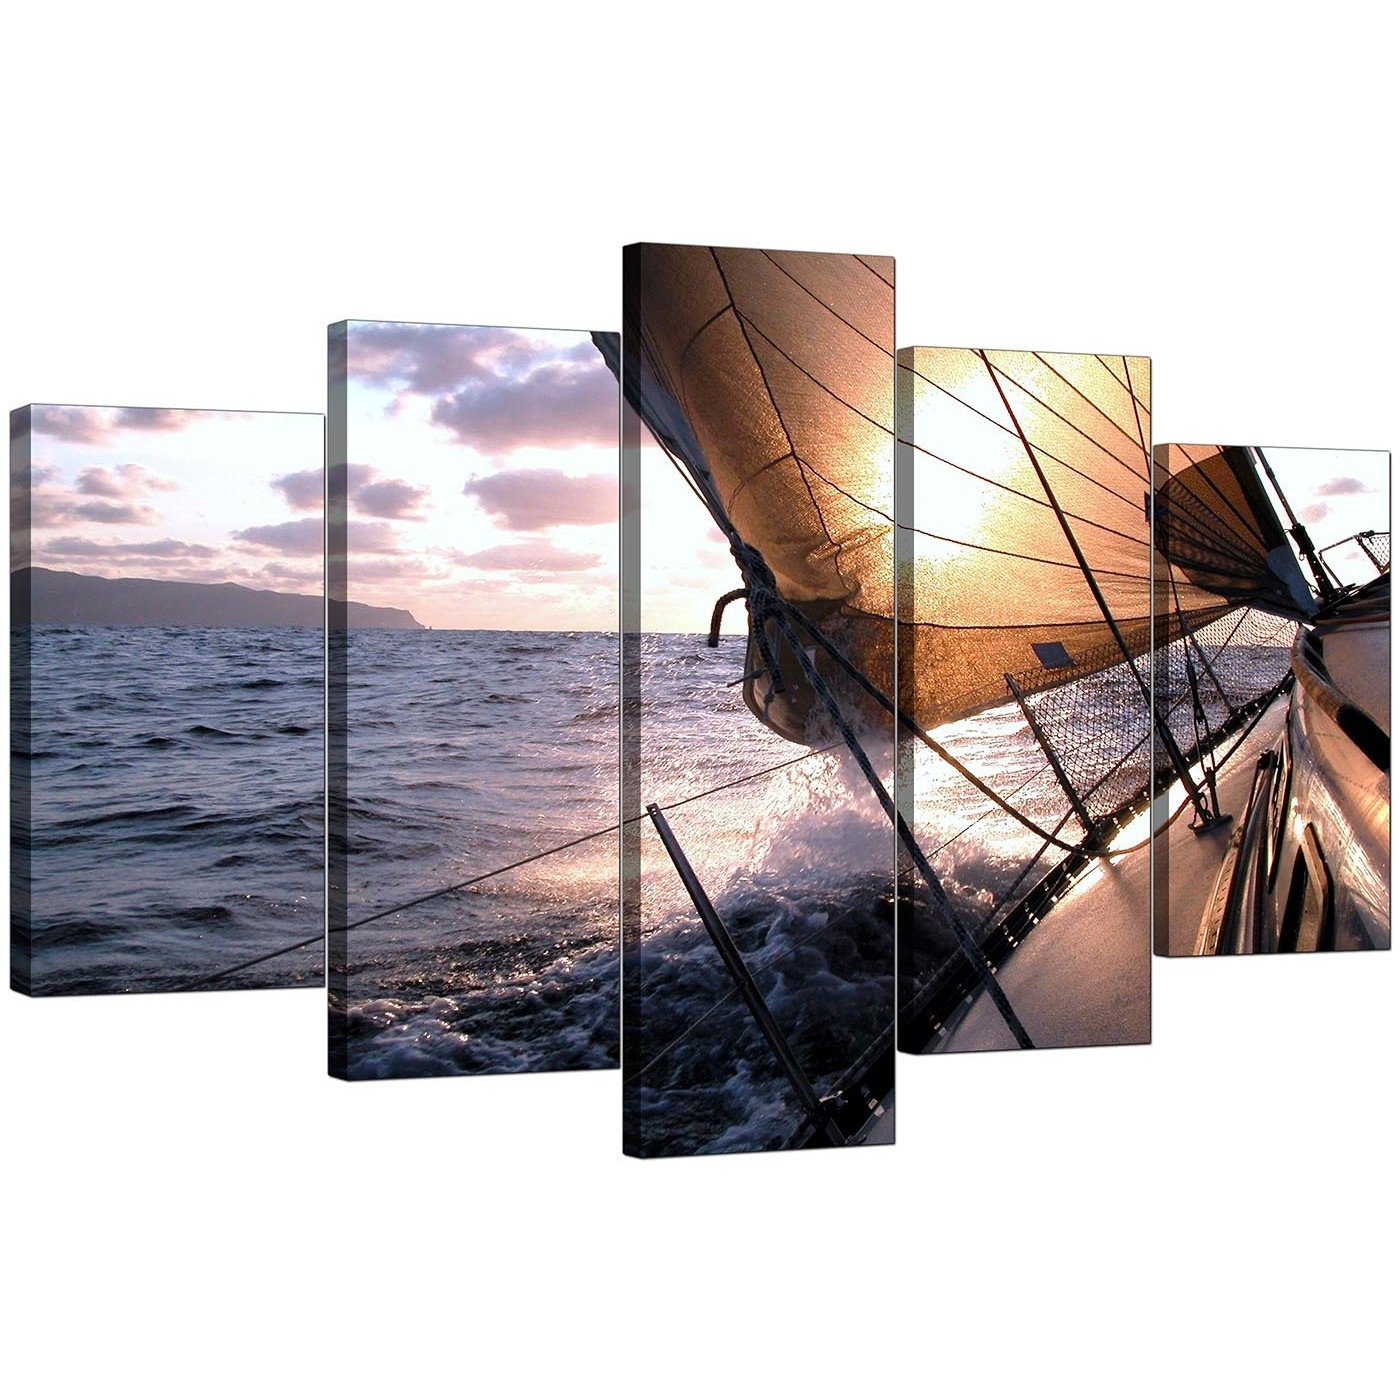 Boat Canvas Prints Uk For Your Living Room – 5 Piece Inside Latest 5 Piece Wall Art Canvas (View 10 of 15)